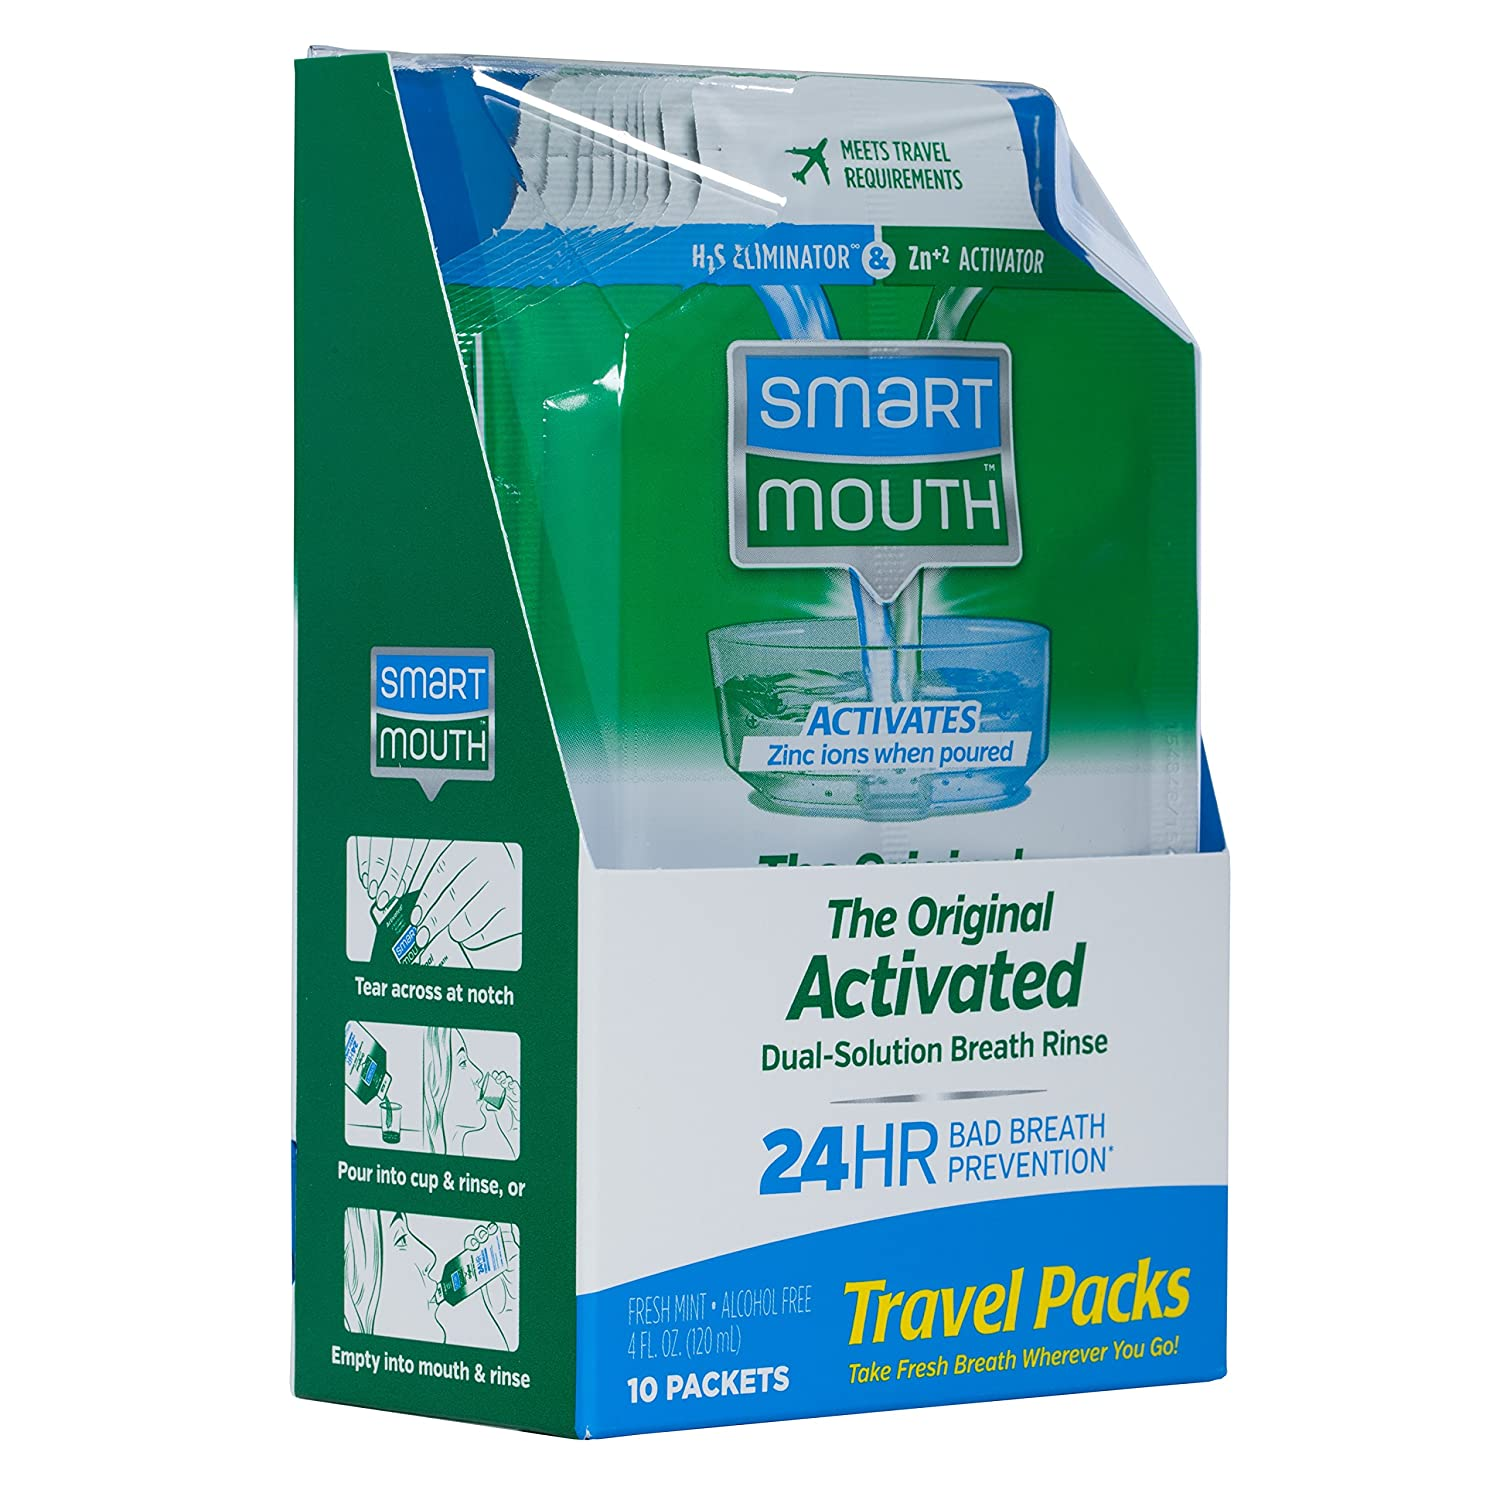 SmartMouth Mouthwash Travel Packets for 24 Hours of Fresh Breath Guaranteed, 12 Boxes, 10 packs each